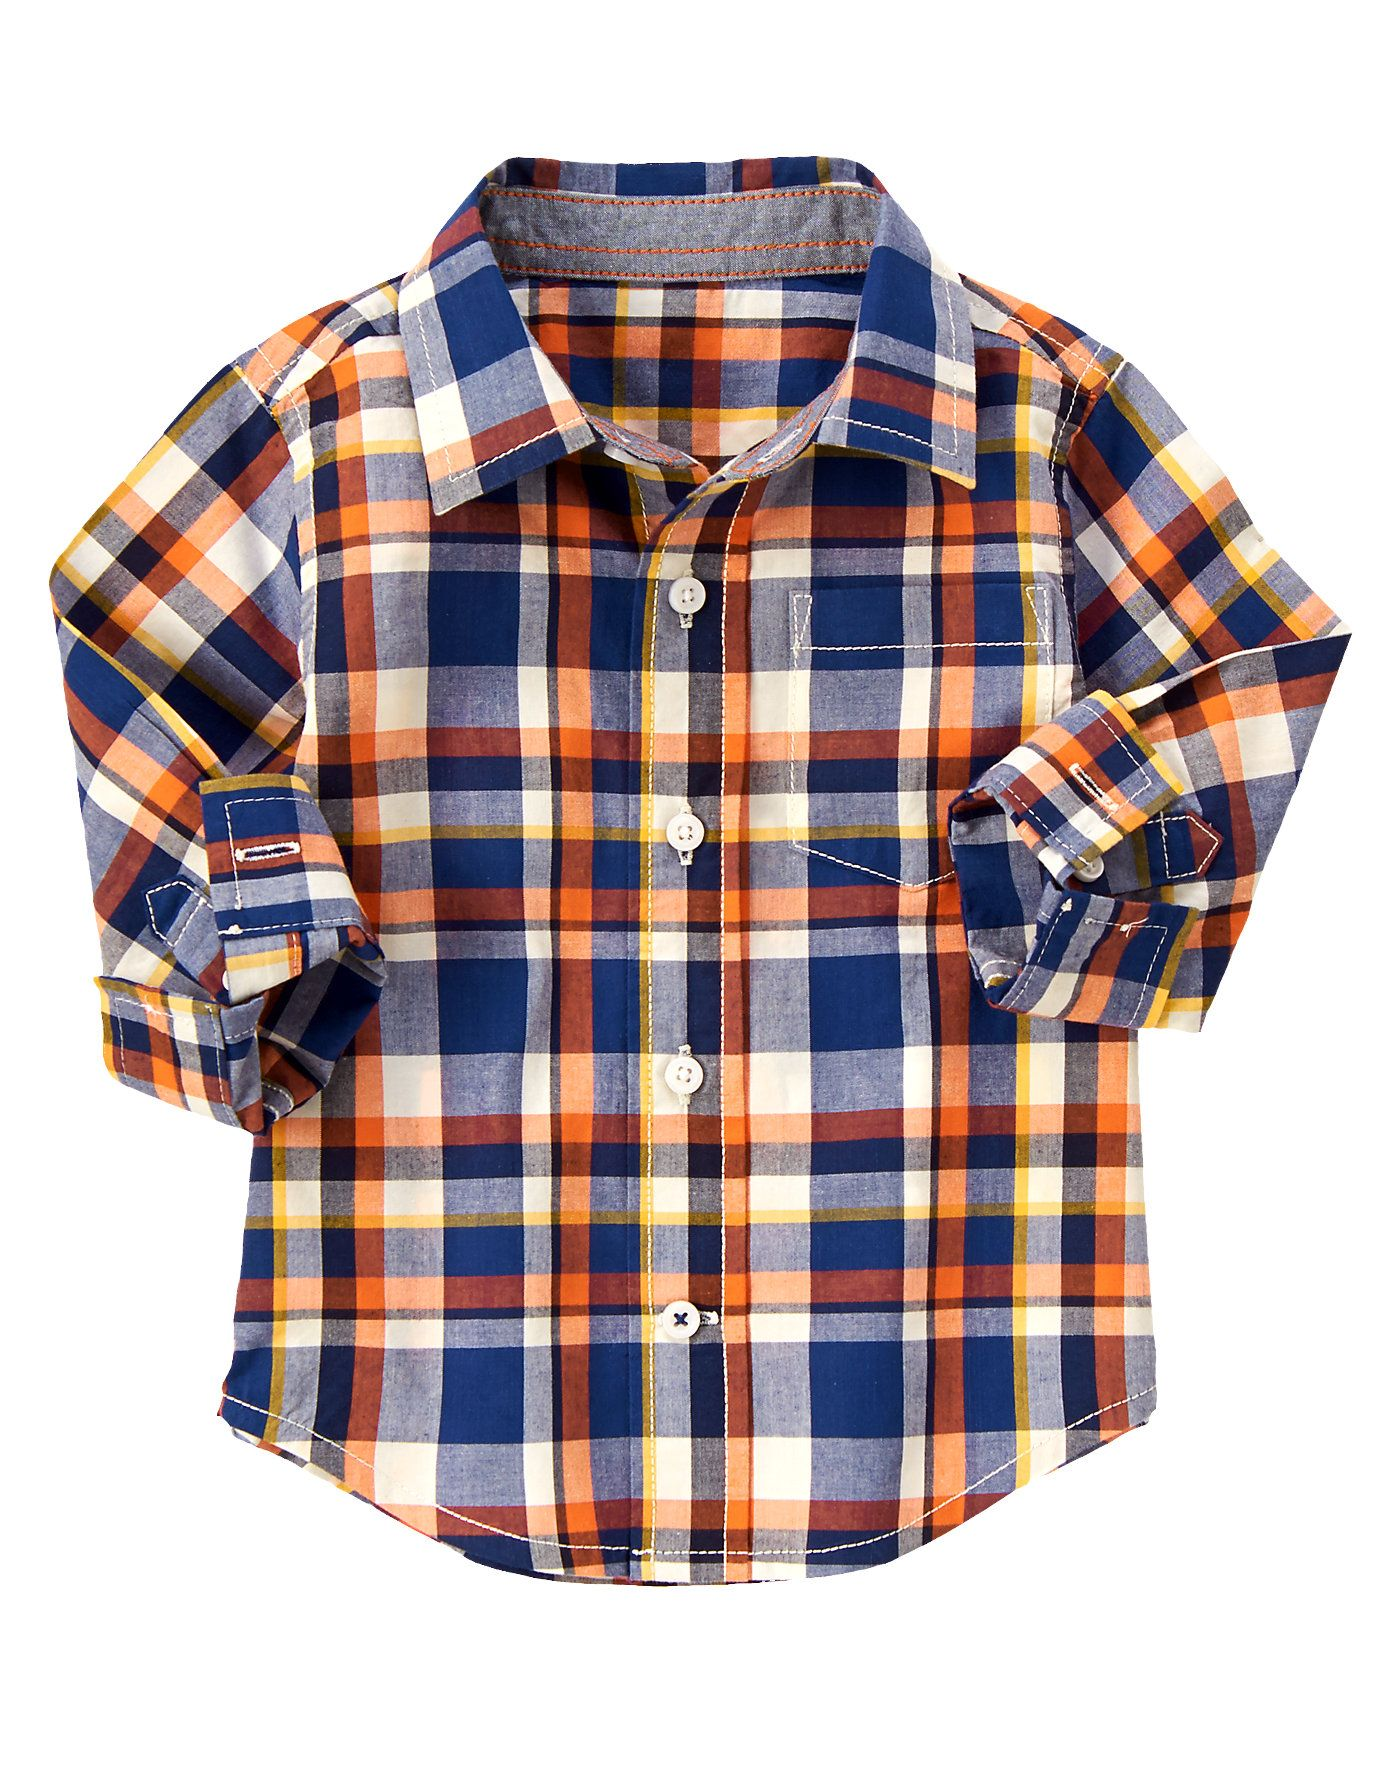 Flannel shirt for baby boy  Plaid Shirt at Gymboree  Fall Pictures  Pinterest  Gymboree